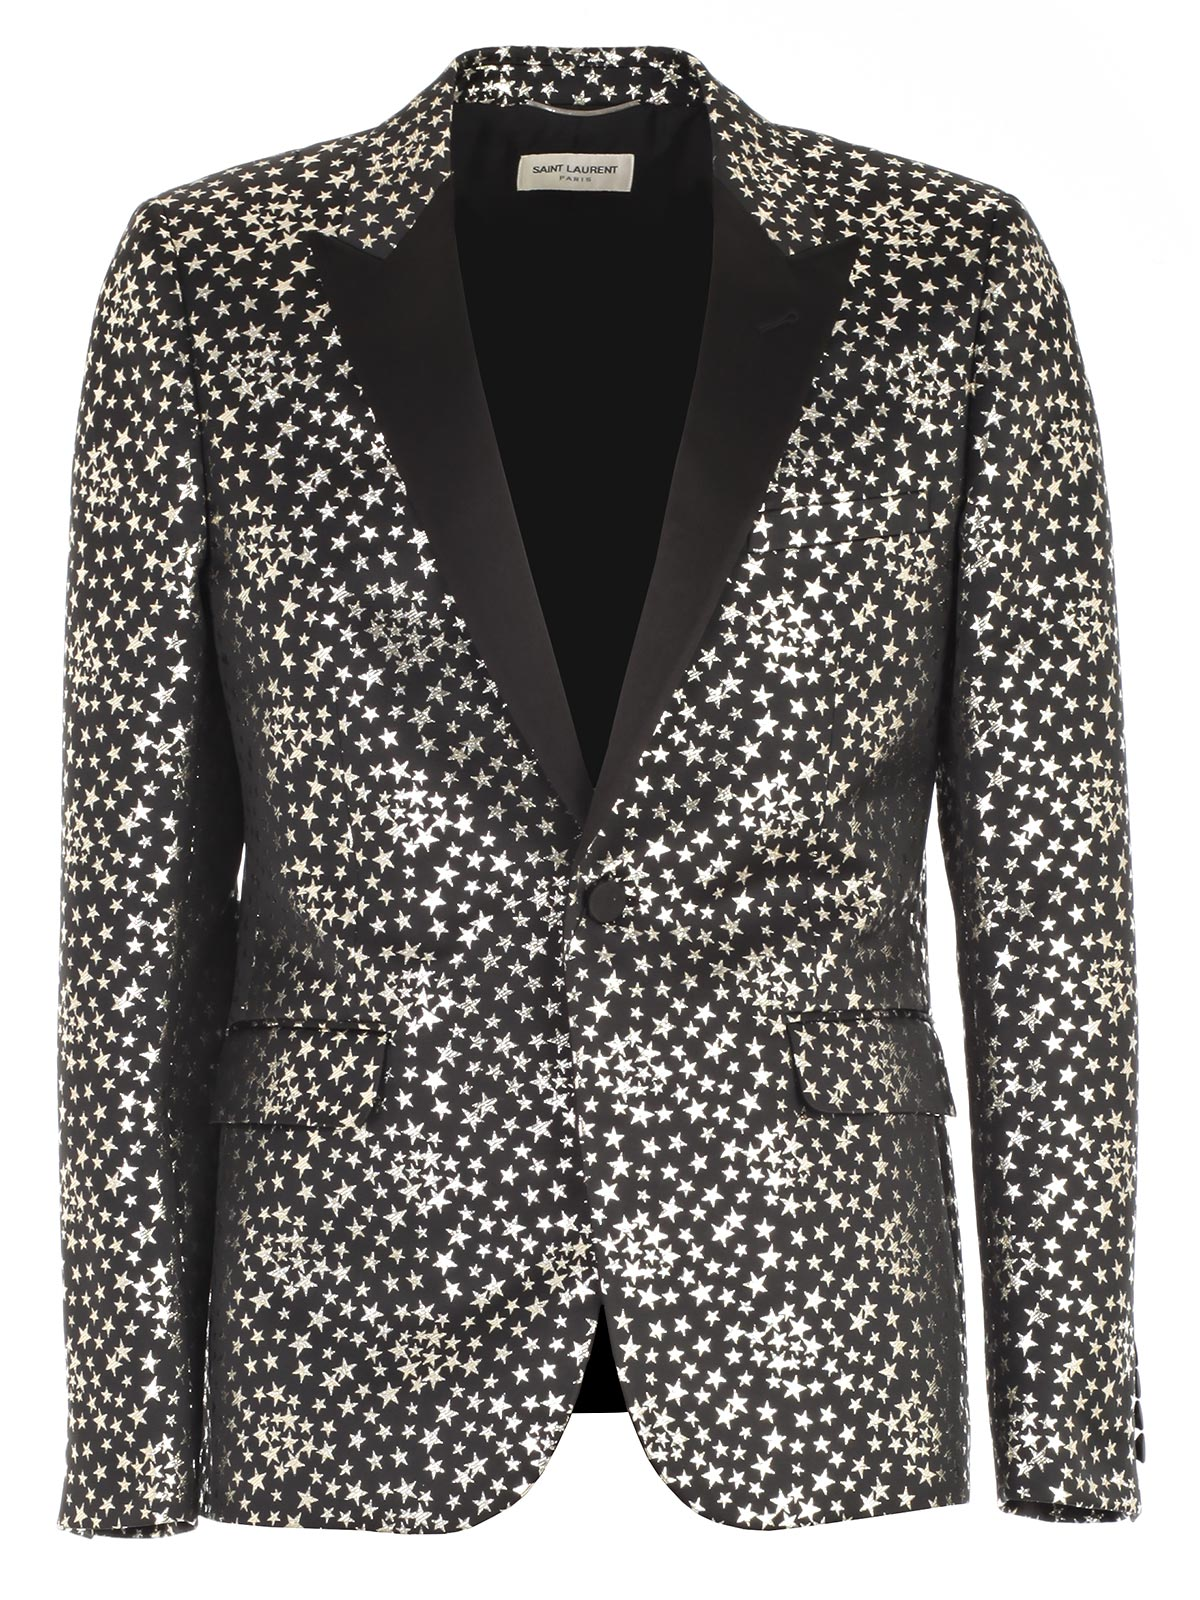 Picture of SAINT LAURENT JACKET GIACCA CON STELLE ARGENTO